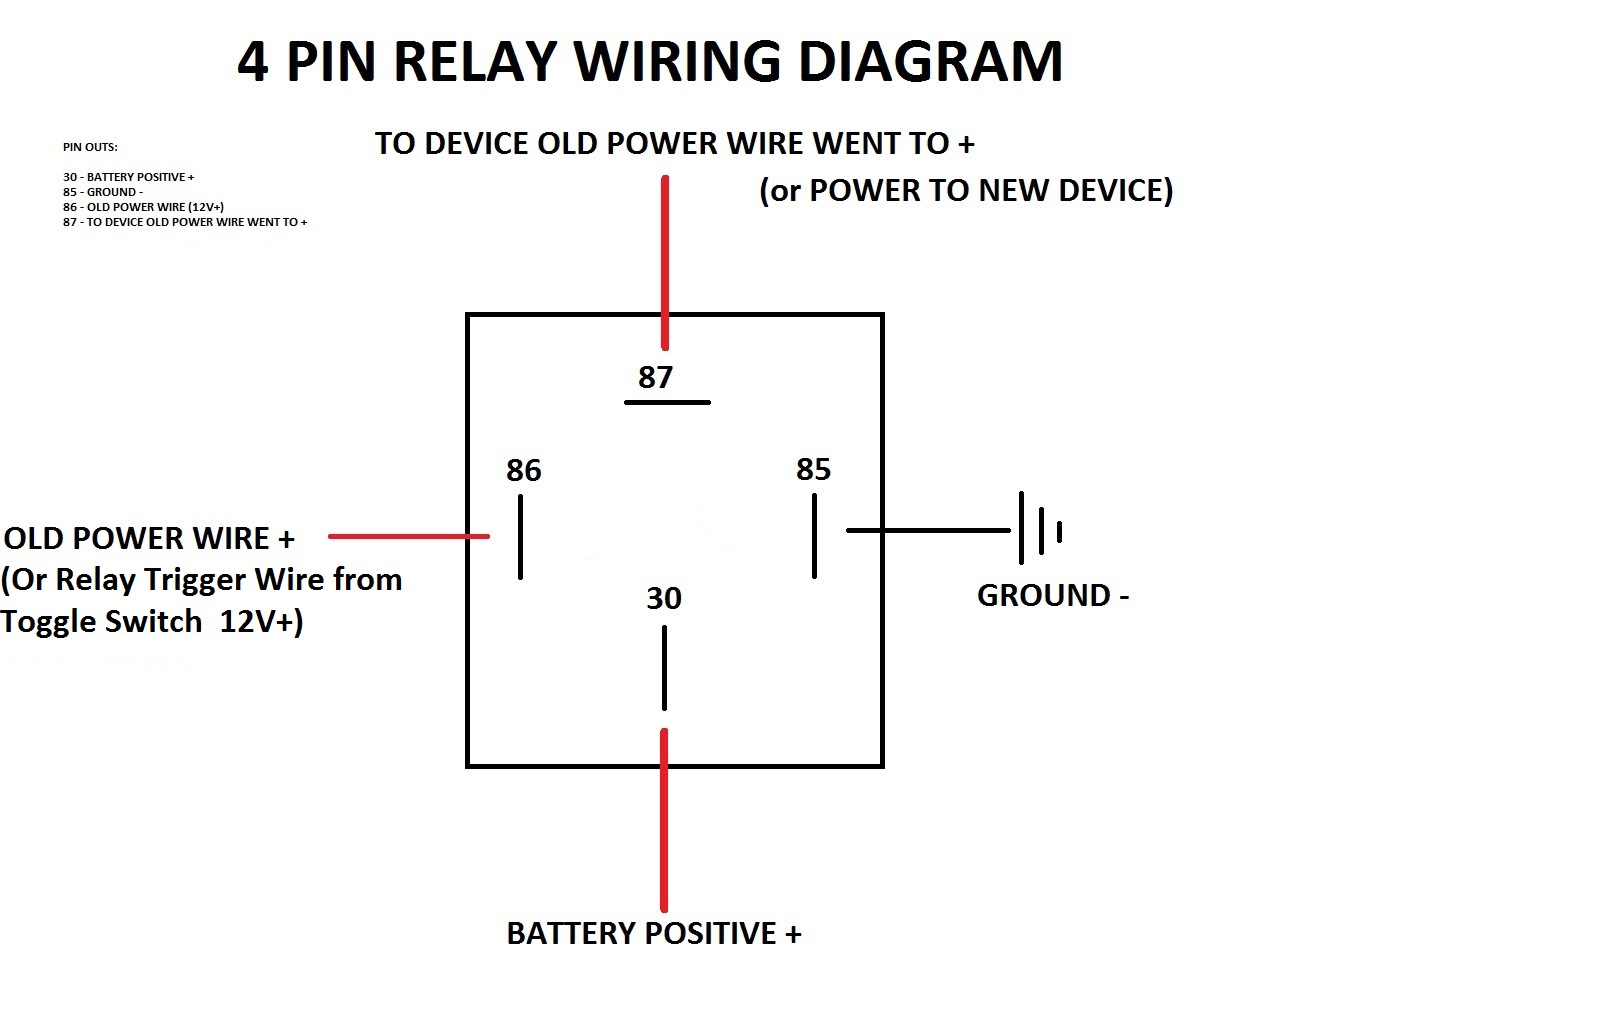 4 pole relay wiring diagram zx 8472  pin flasher relay wiring 120v relay wiring diagram relay  zx 8472  pin flasher relay wiring 120v